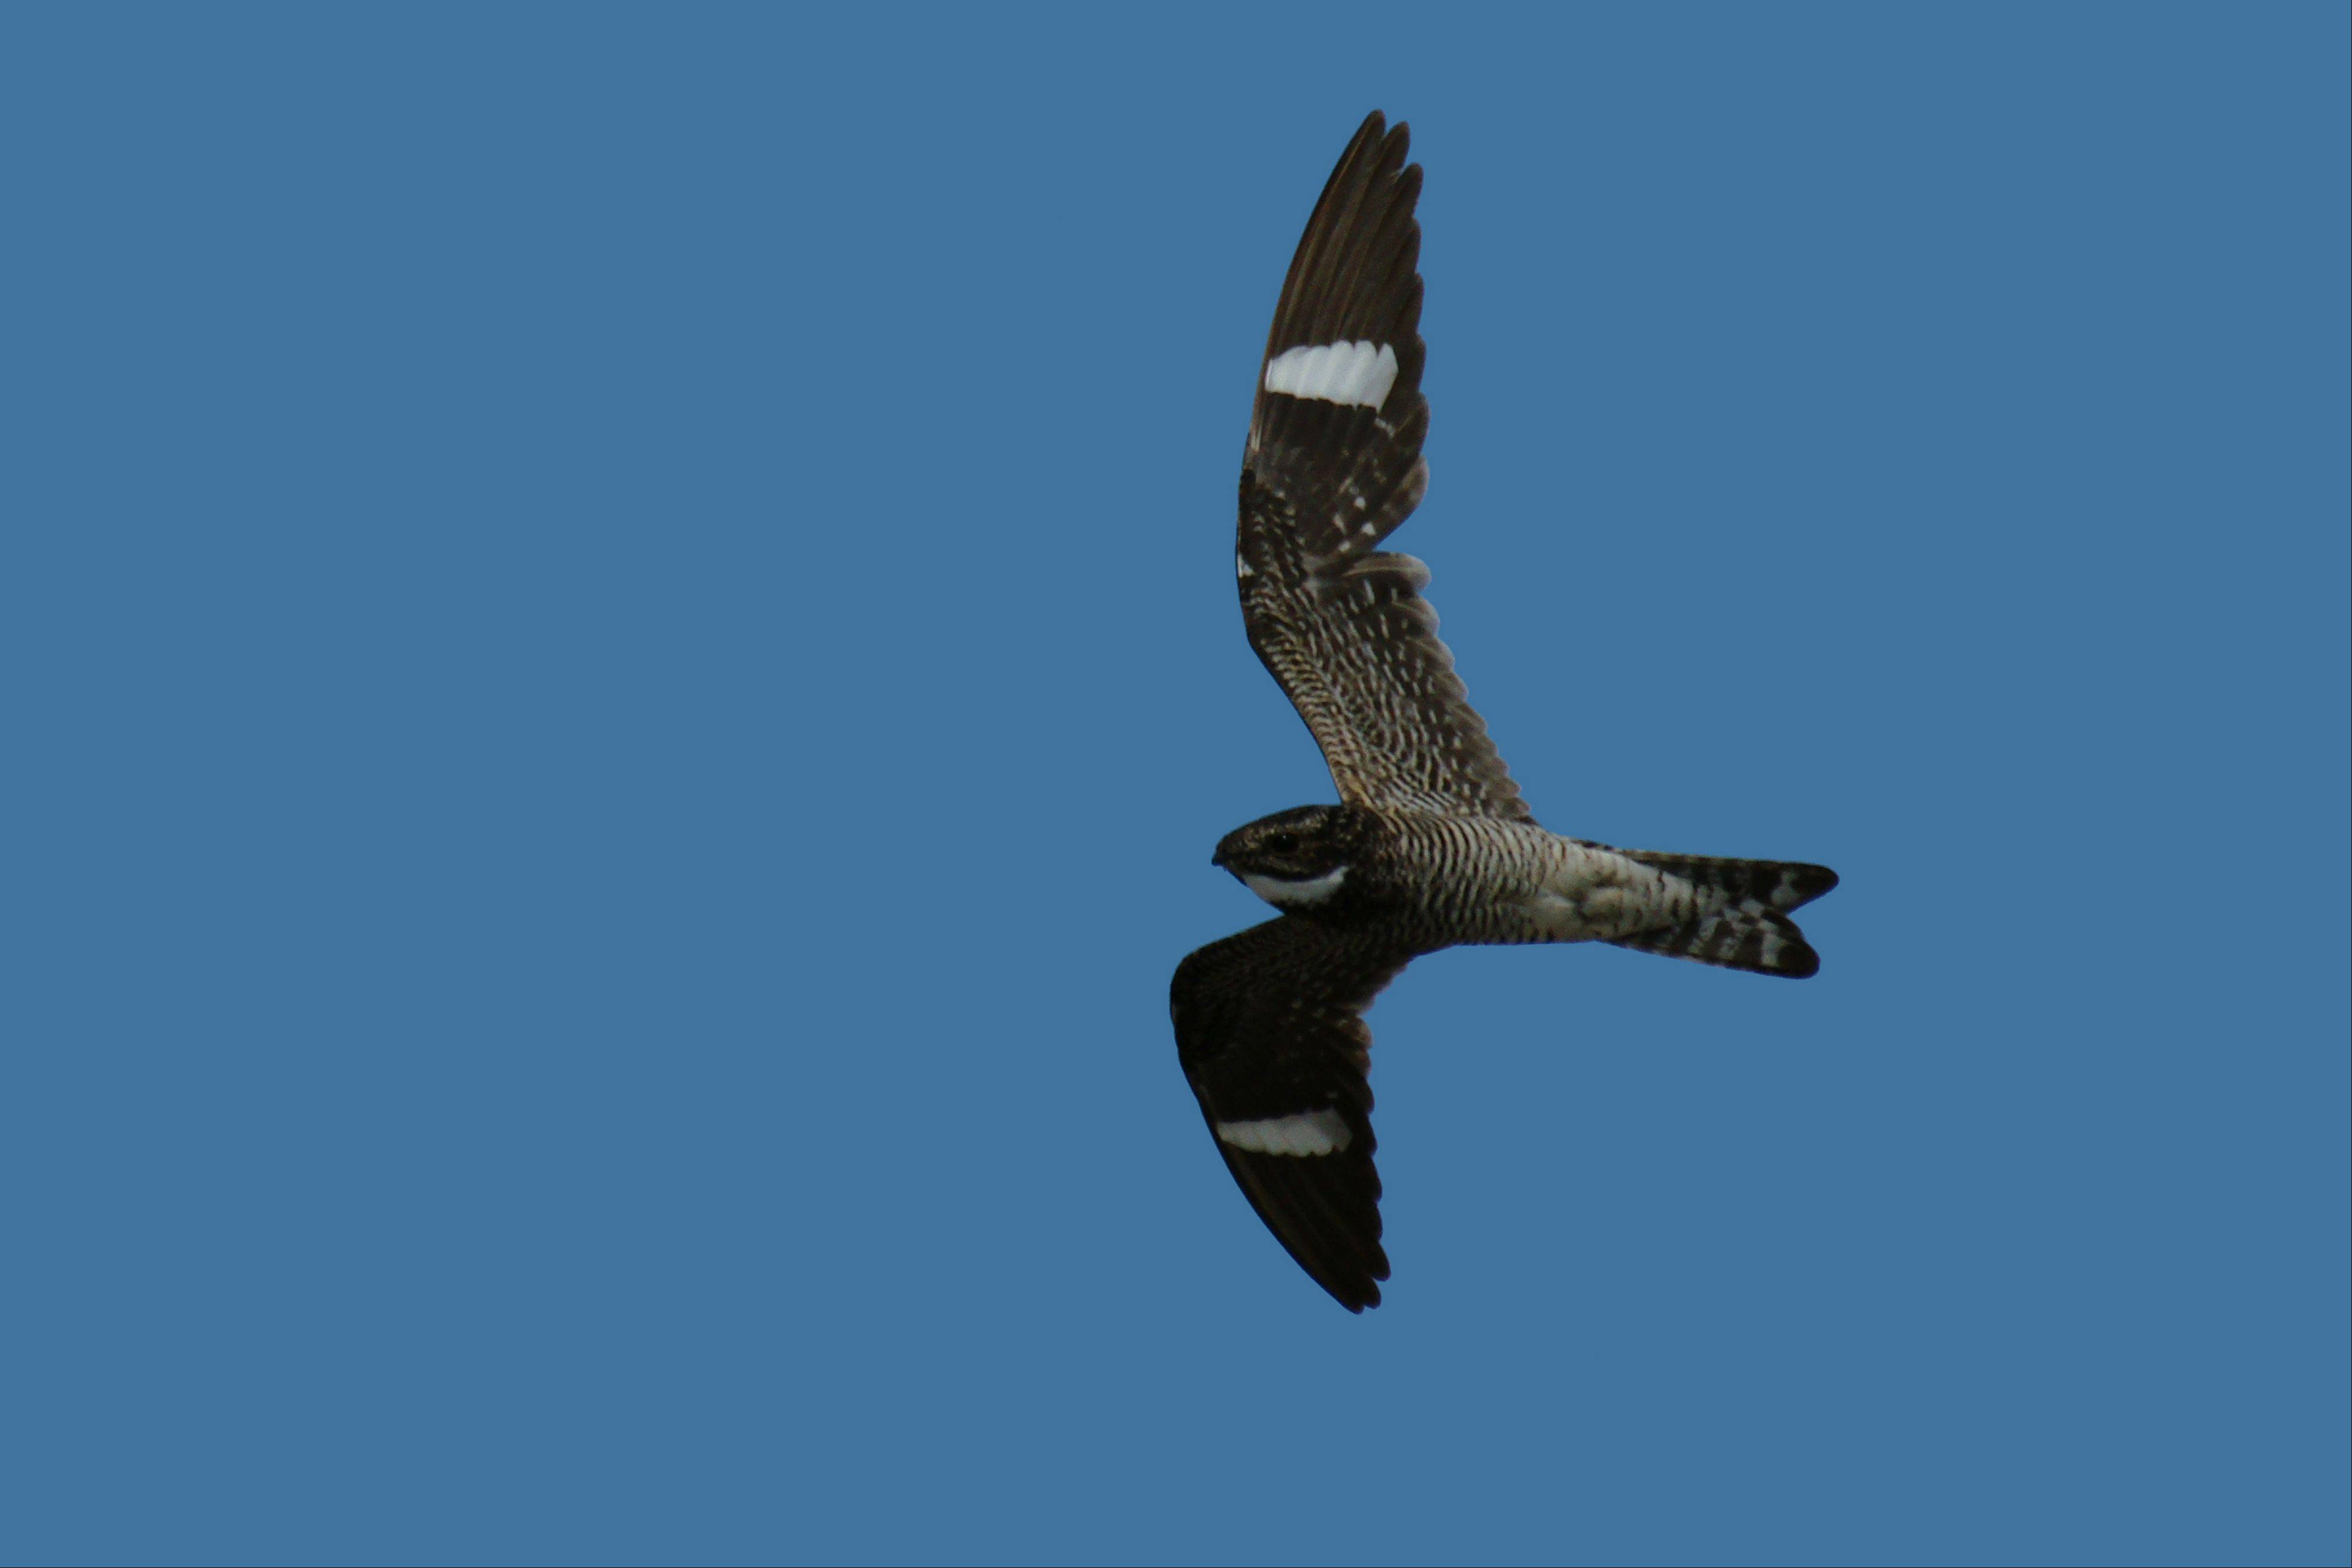 Common nighthawks are masters of disguise when sitting still but easily recognized in flight. Only the male has a white throat.